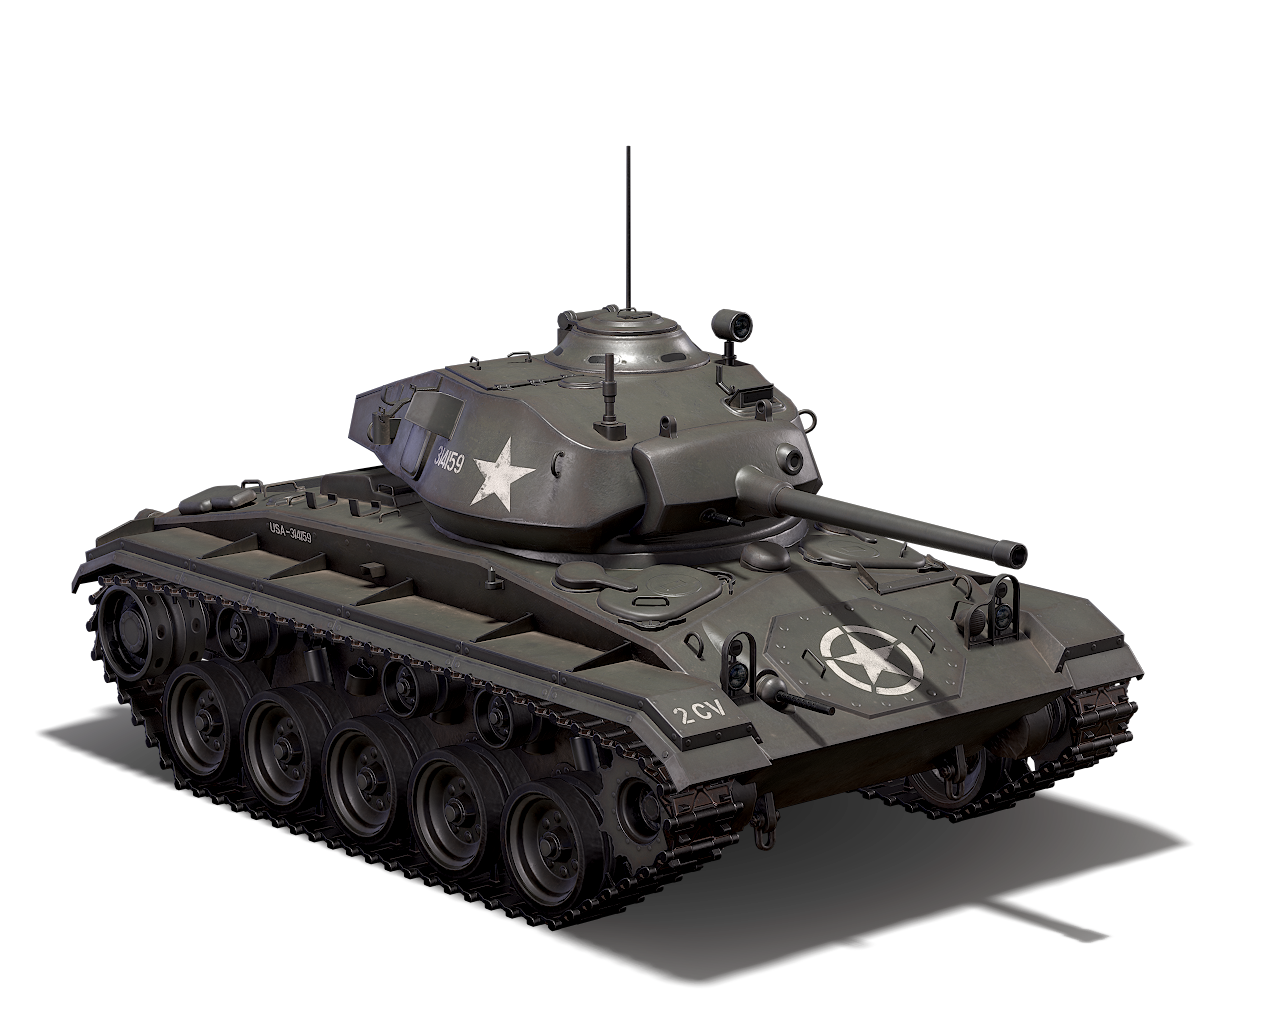 M24 Chaffee Official Heroes Amp Generals Wiki